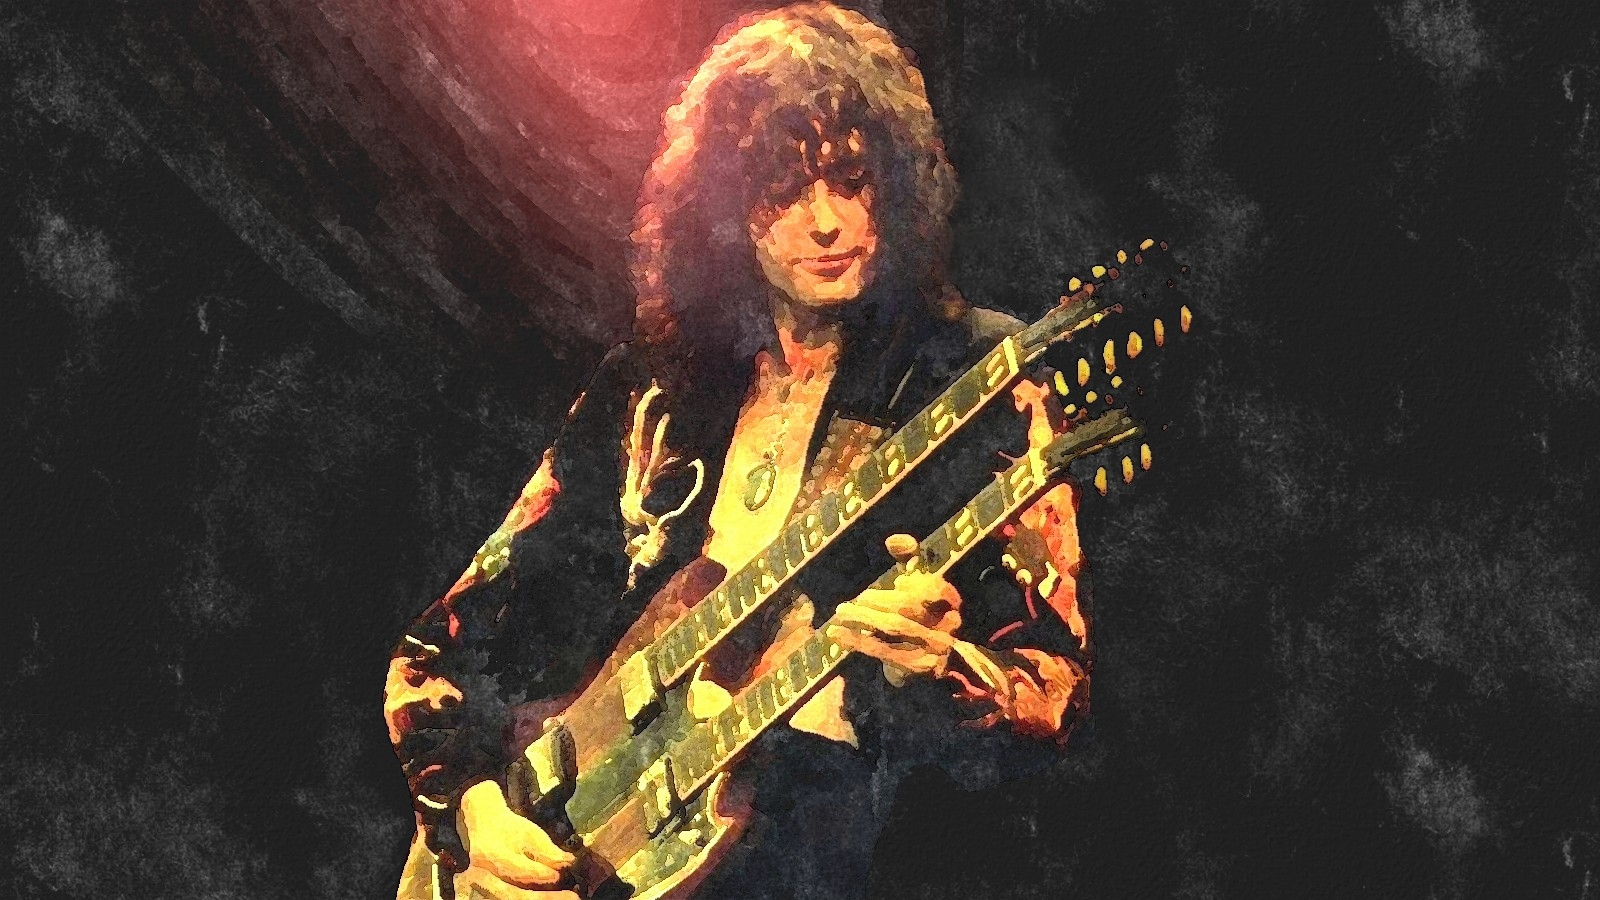 Jimmy Page Wallpaper Wallpaper